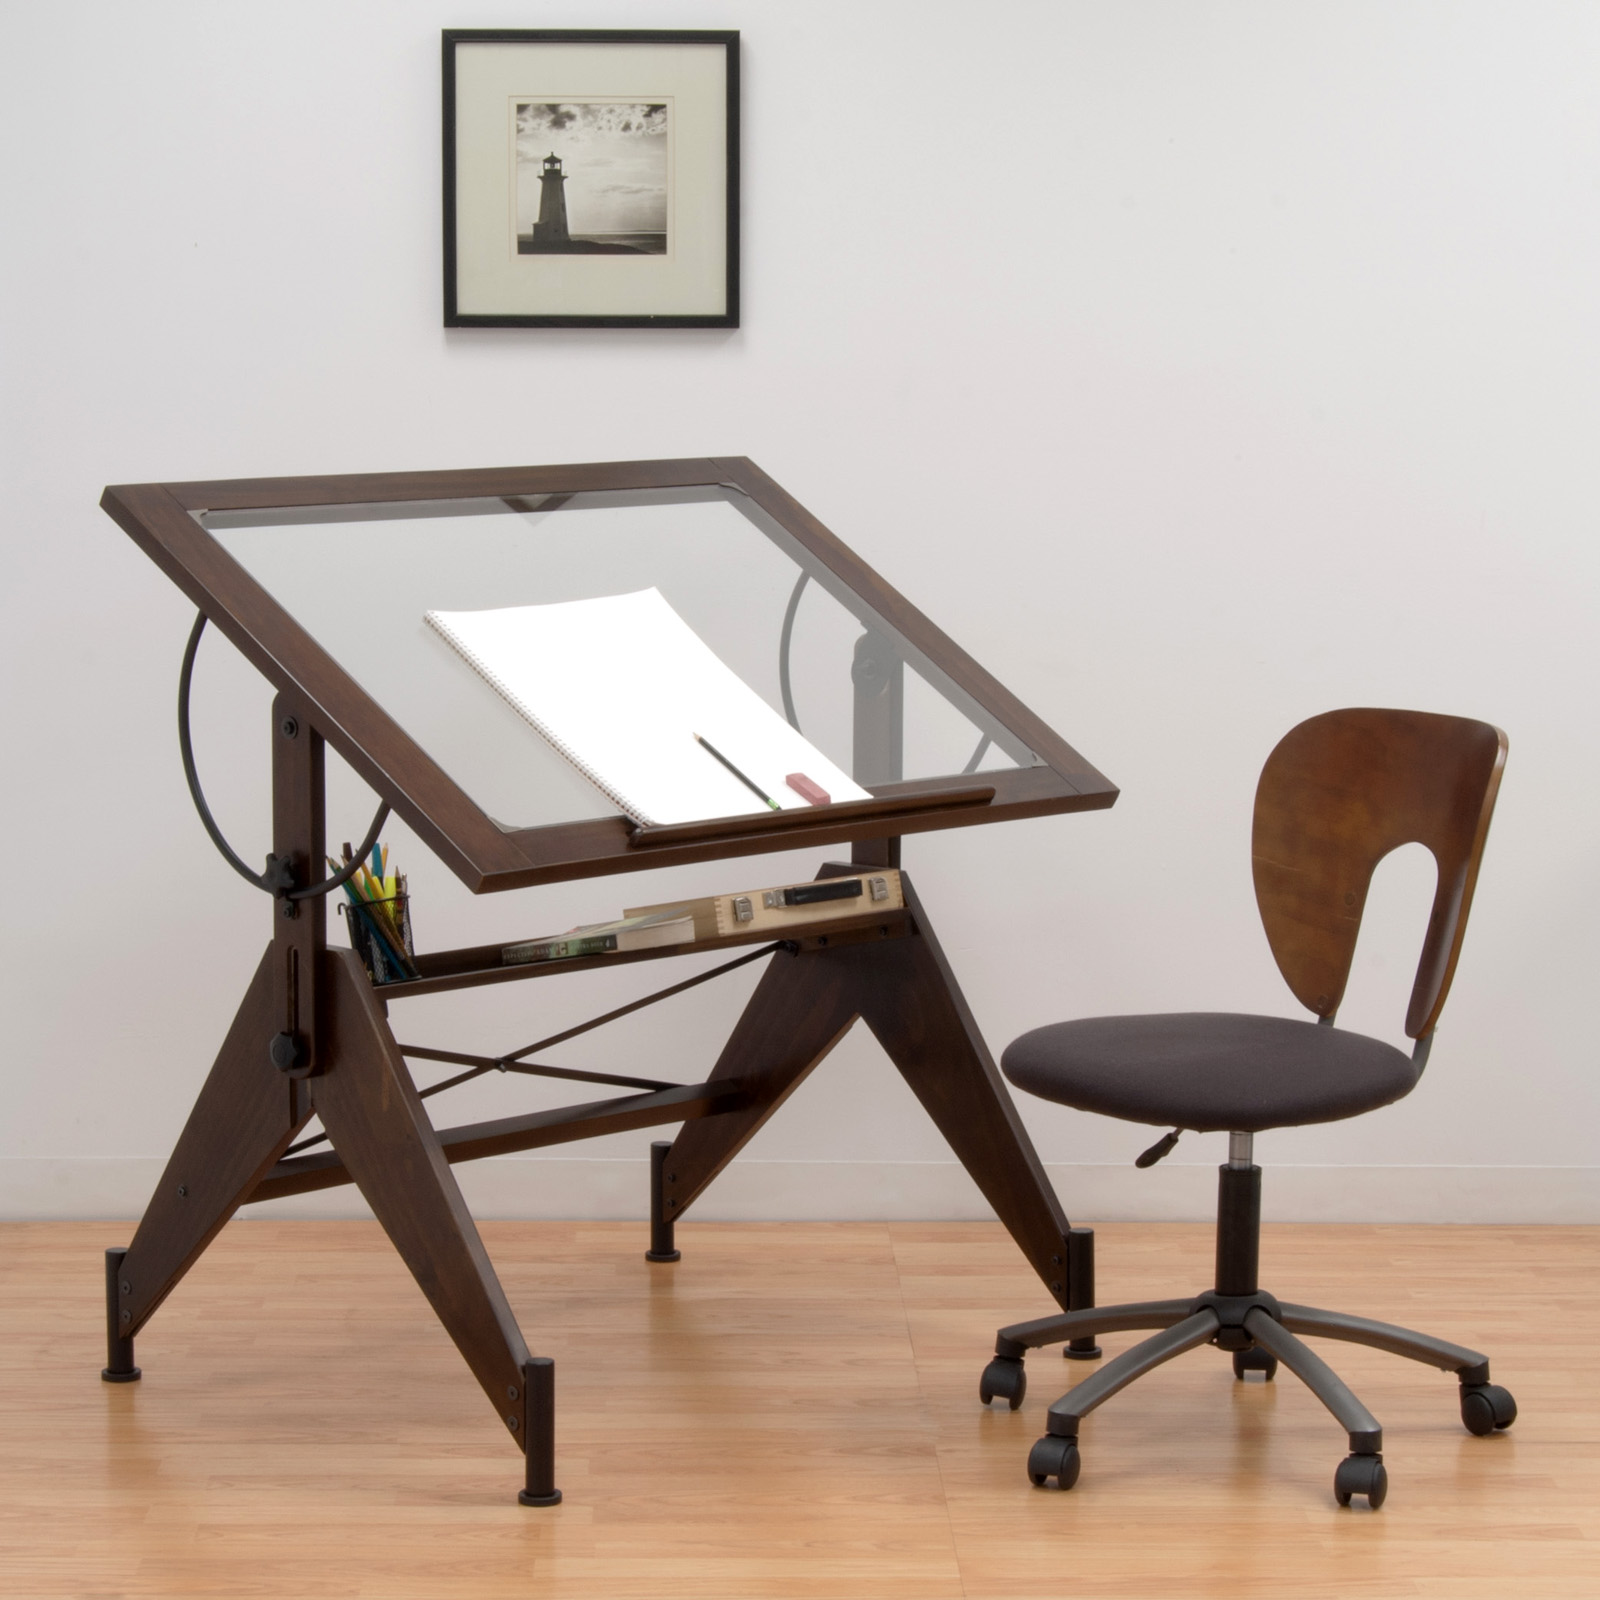 Studio Design Drafting Table studio designs futura glass top drawingdrafting table shipping included Studio Designs Avanta Drafting Table Drafting Drawing Tables At Hayneedle